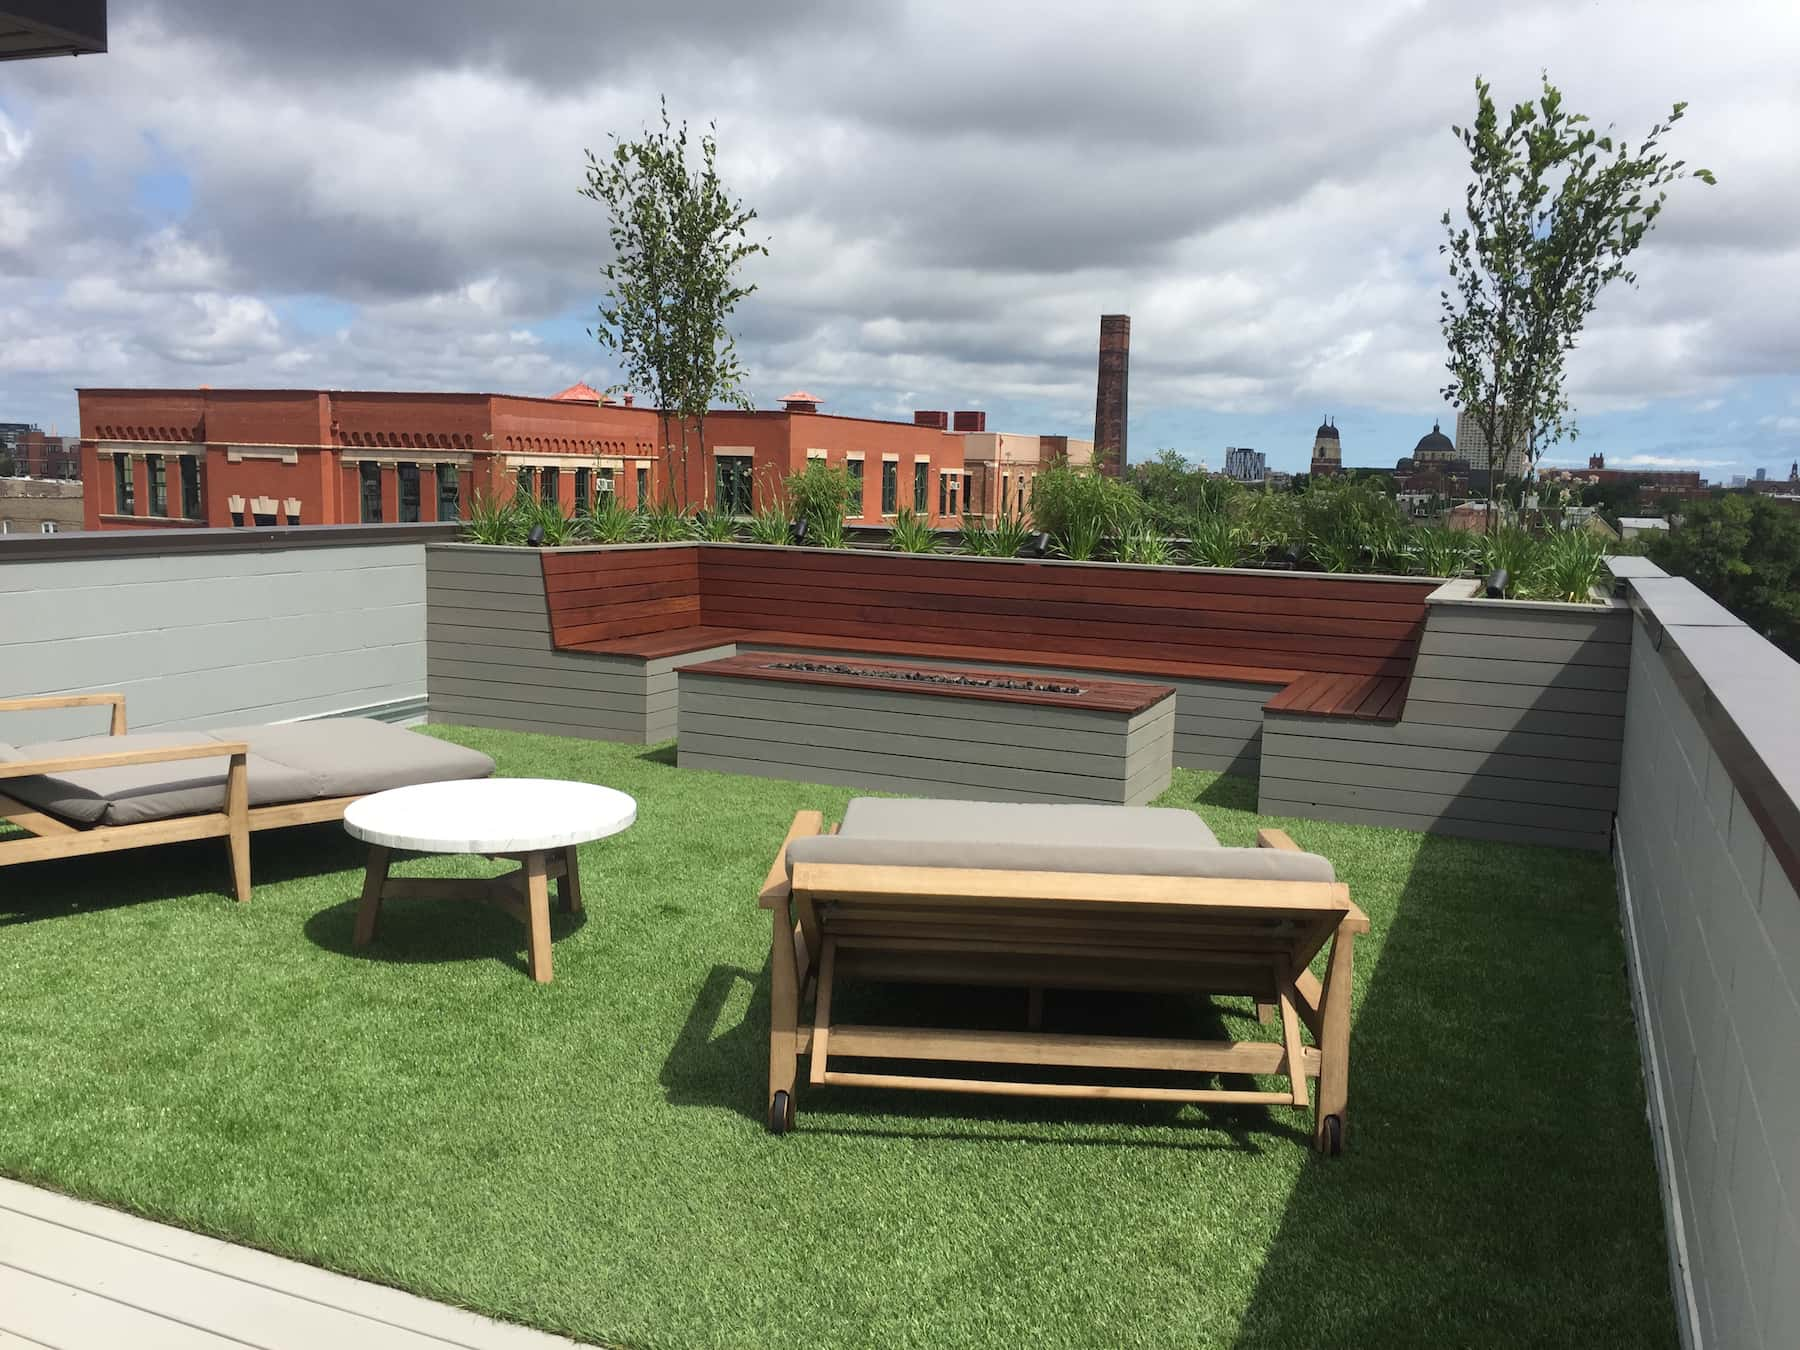 Rooftop Deck & Outdoor Seating